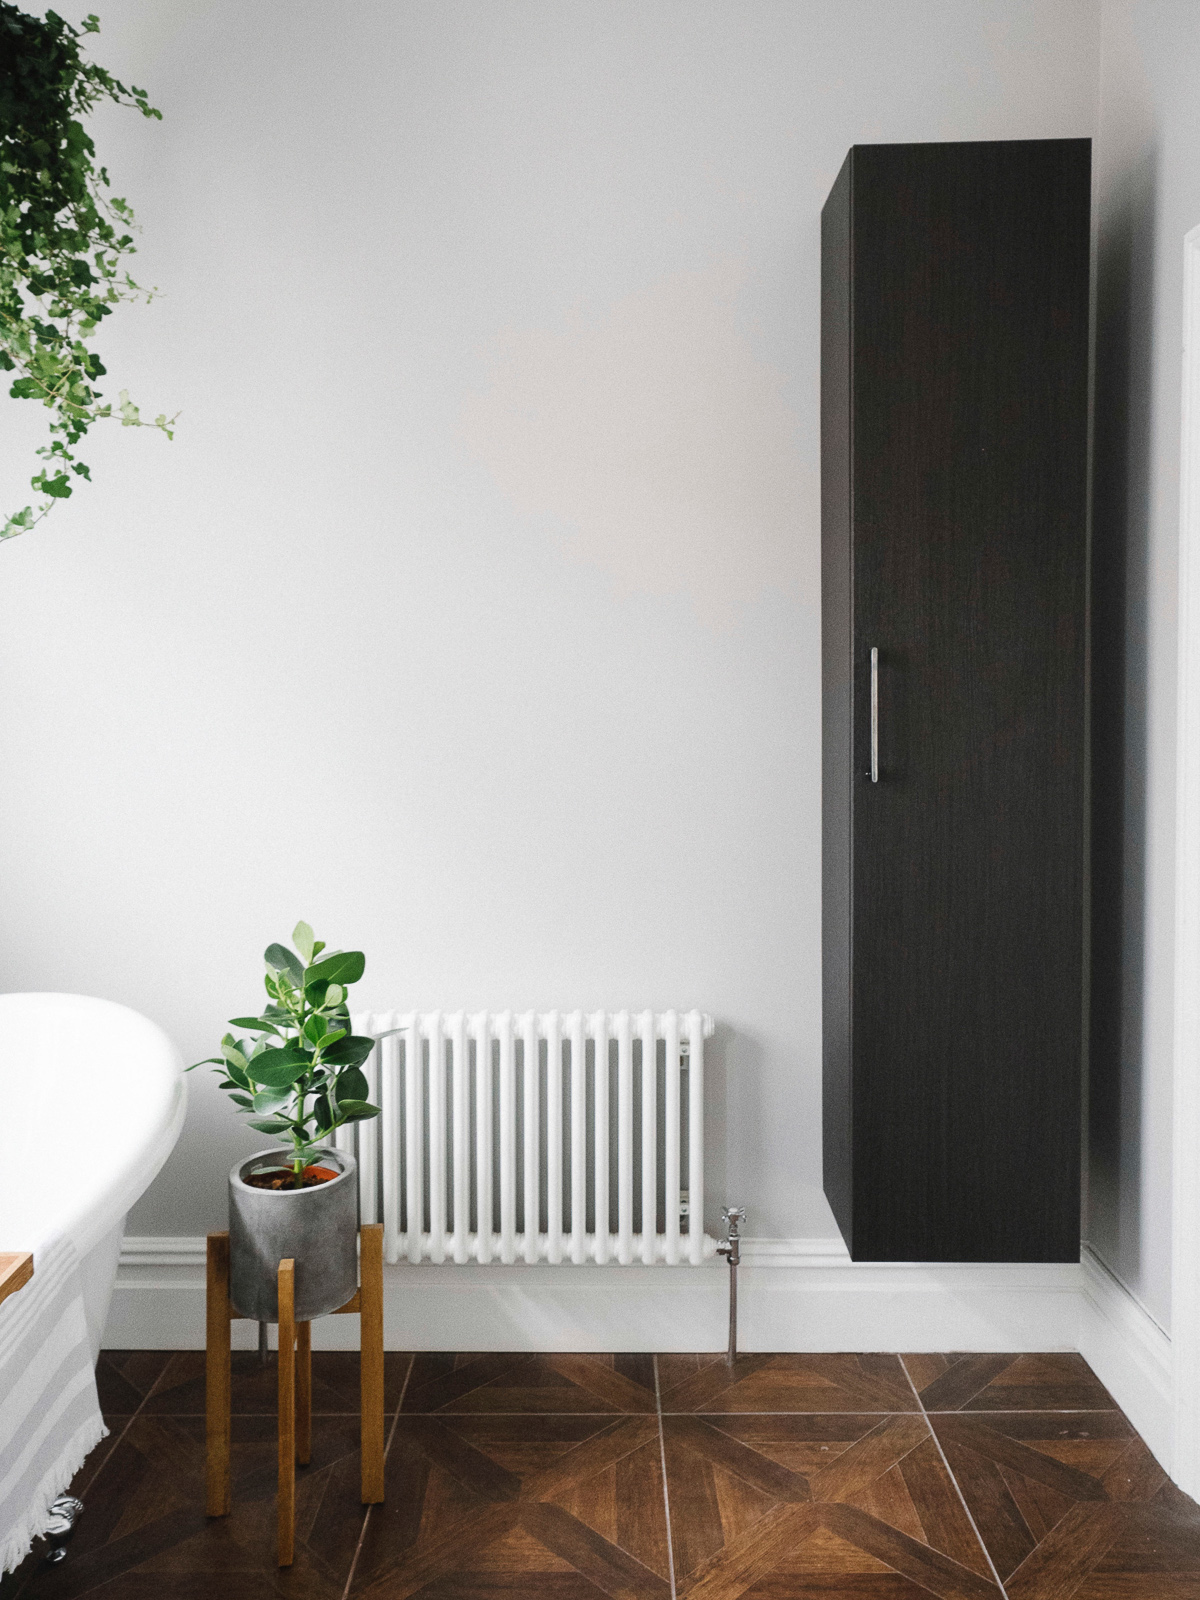 How to achieve the hotel bathroom look in your own home